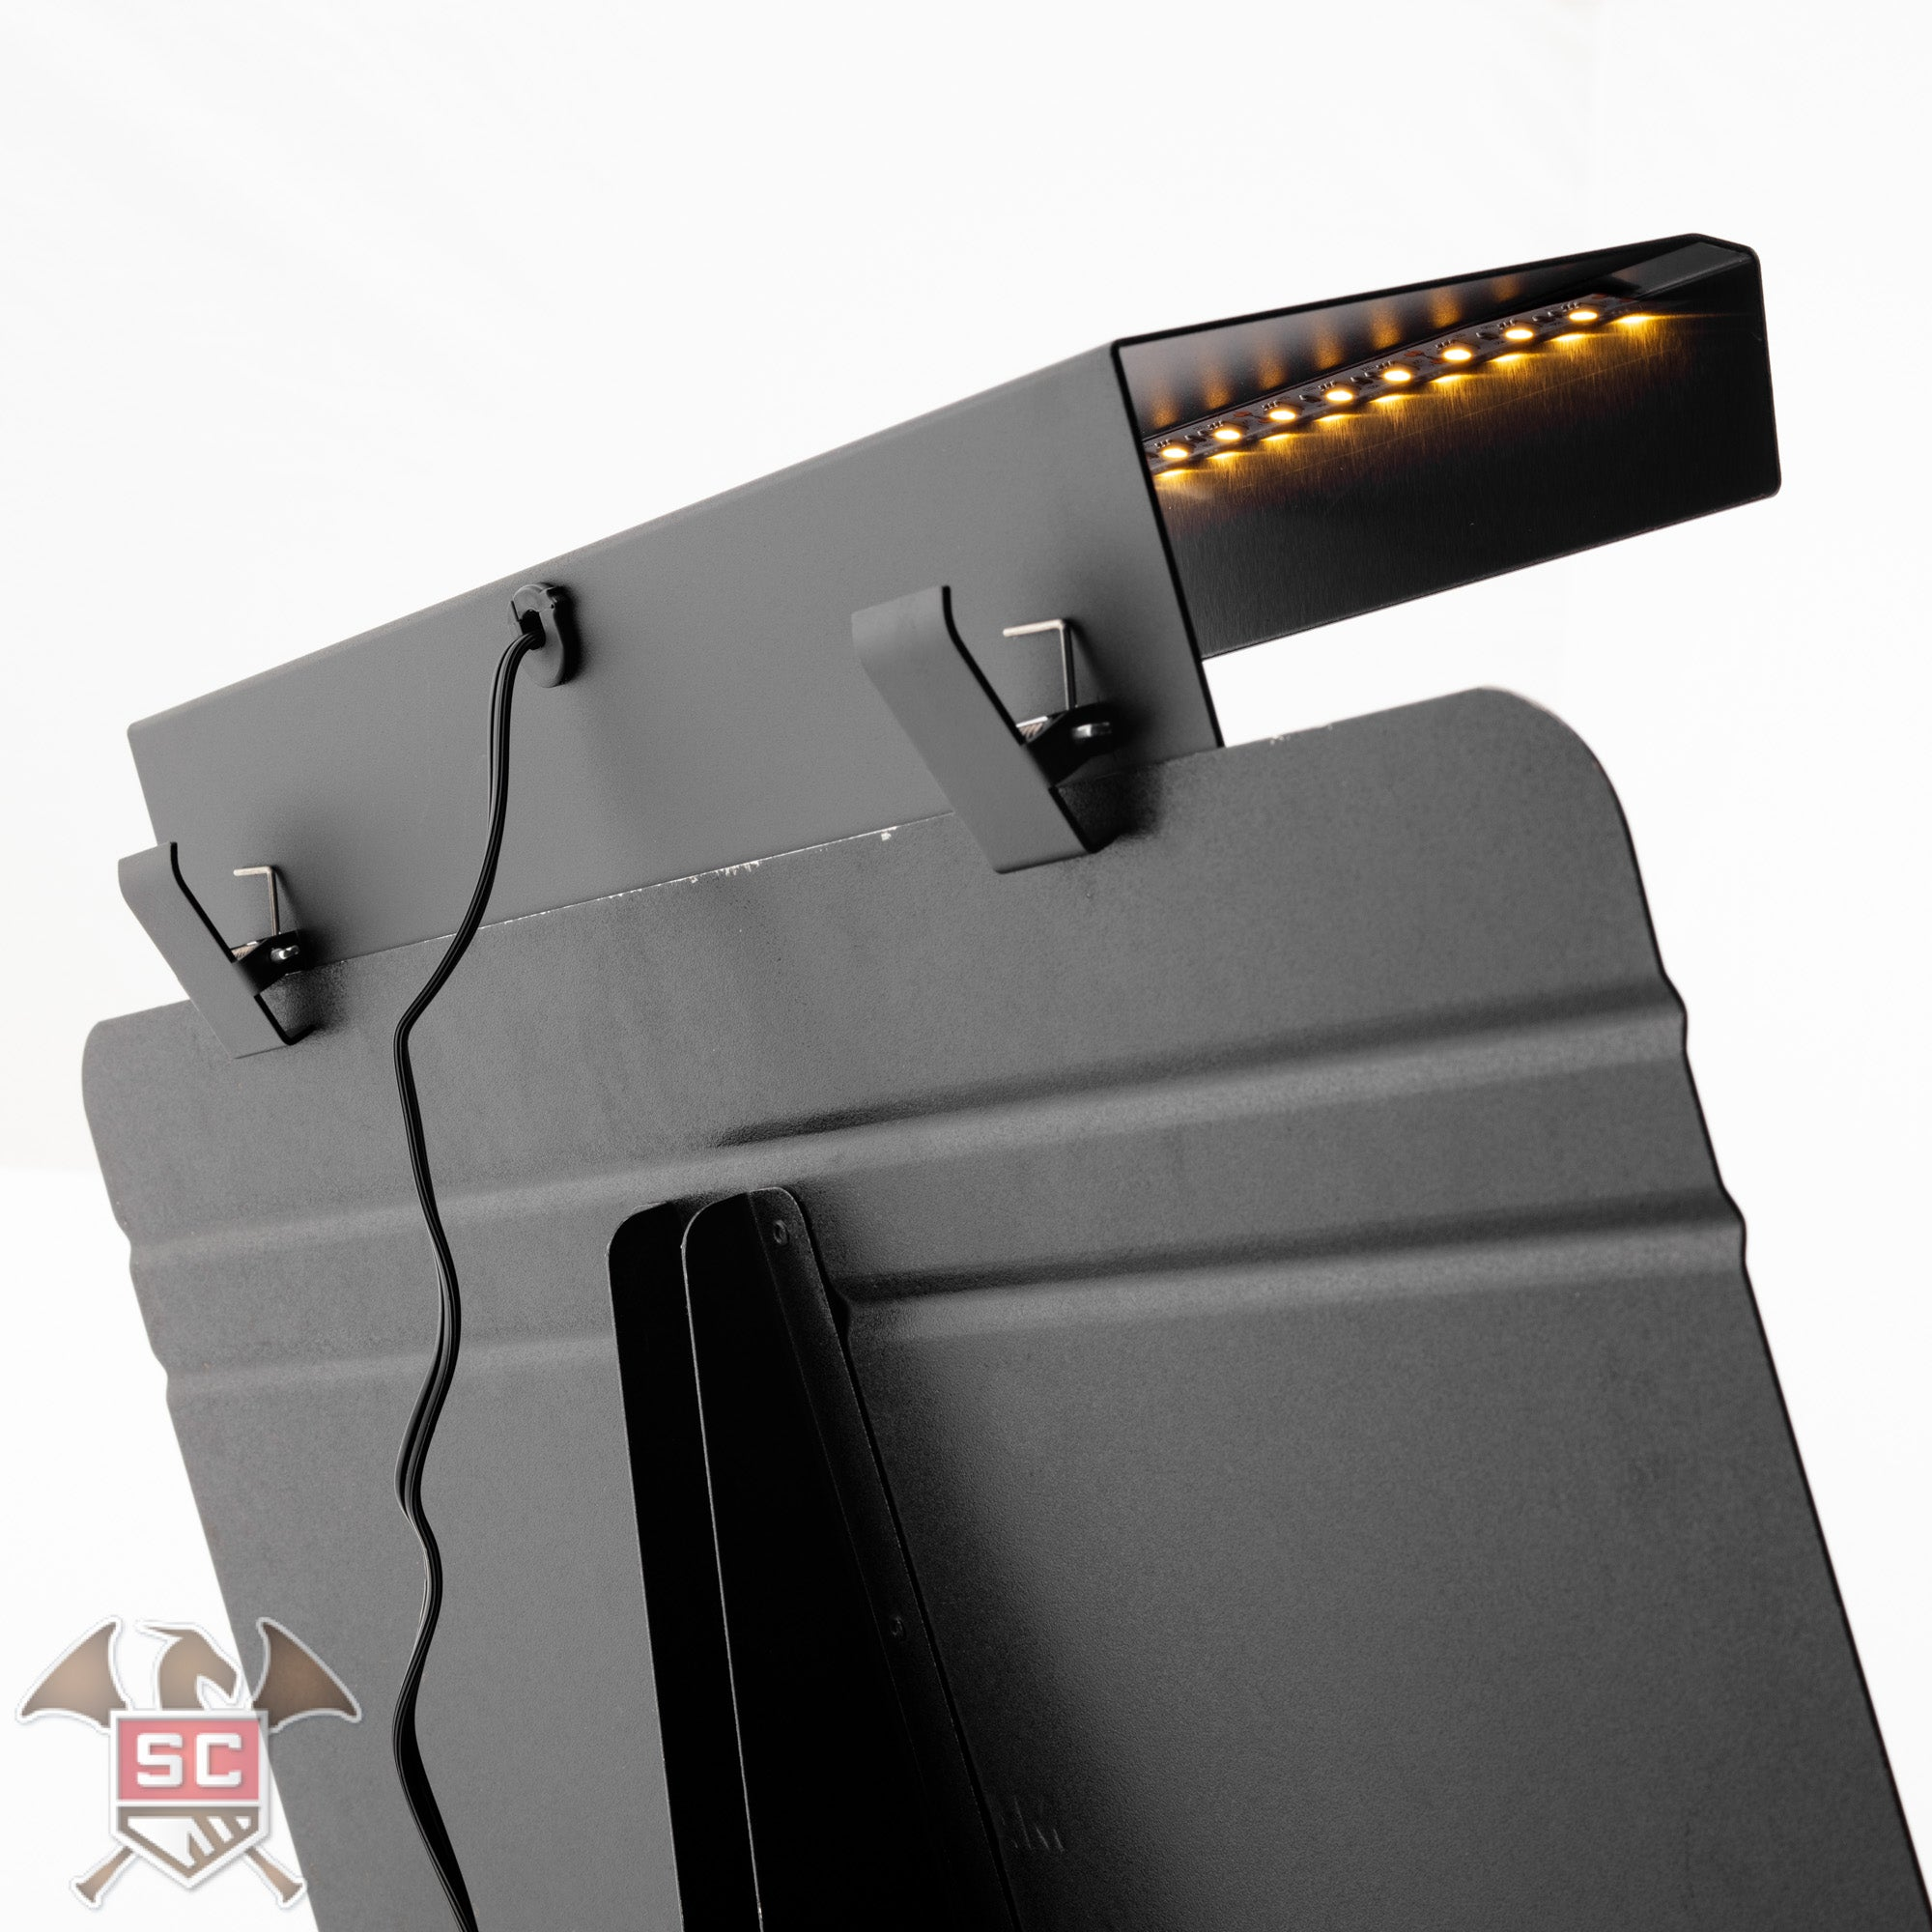 The Aria Diva music stand light.